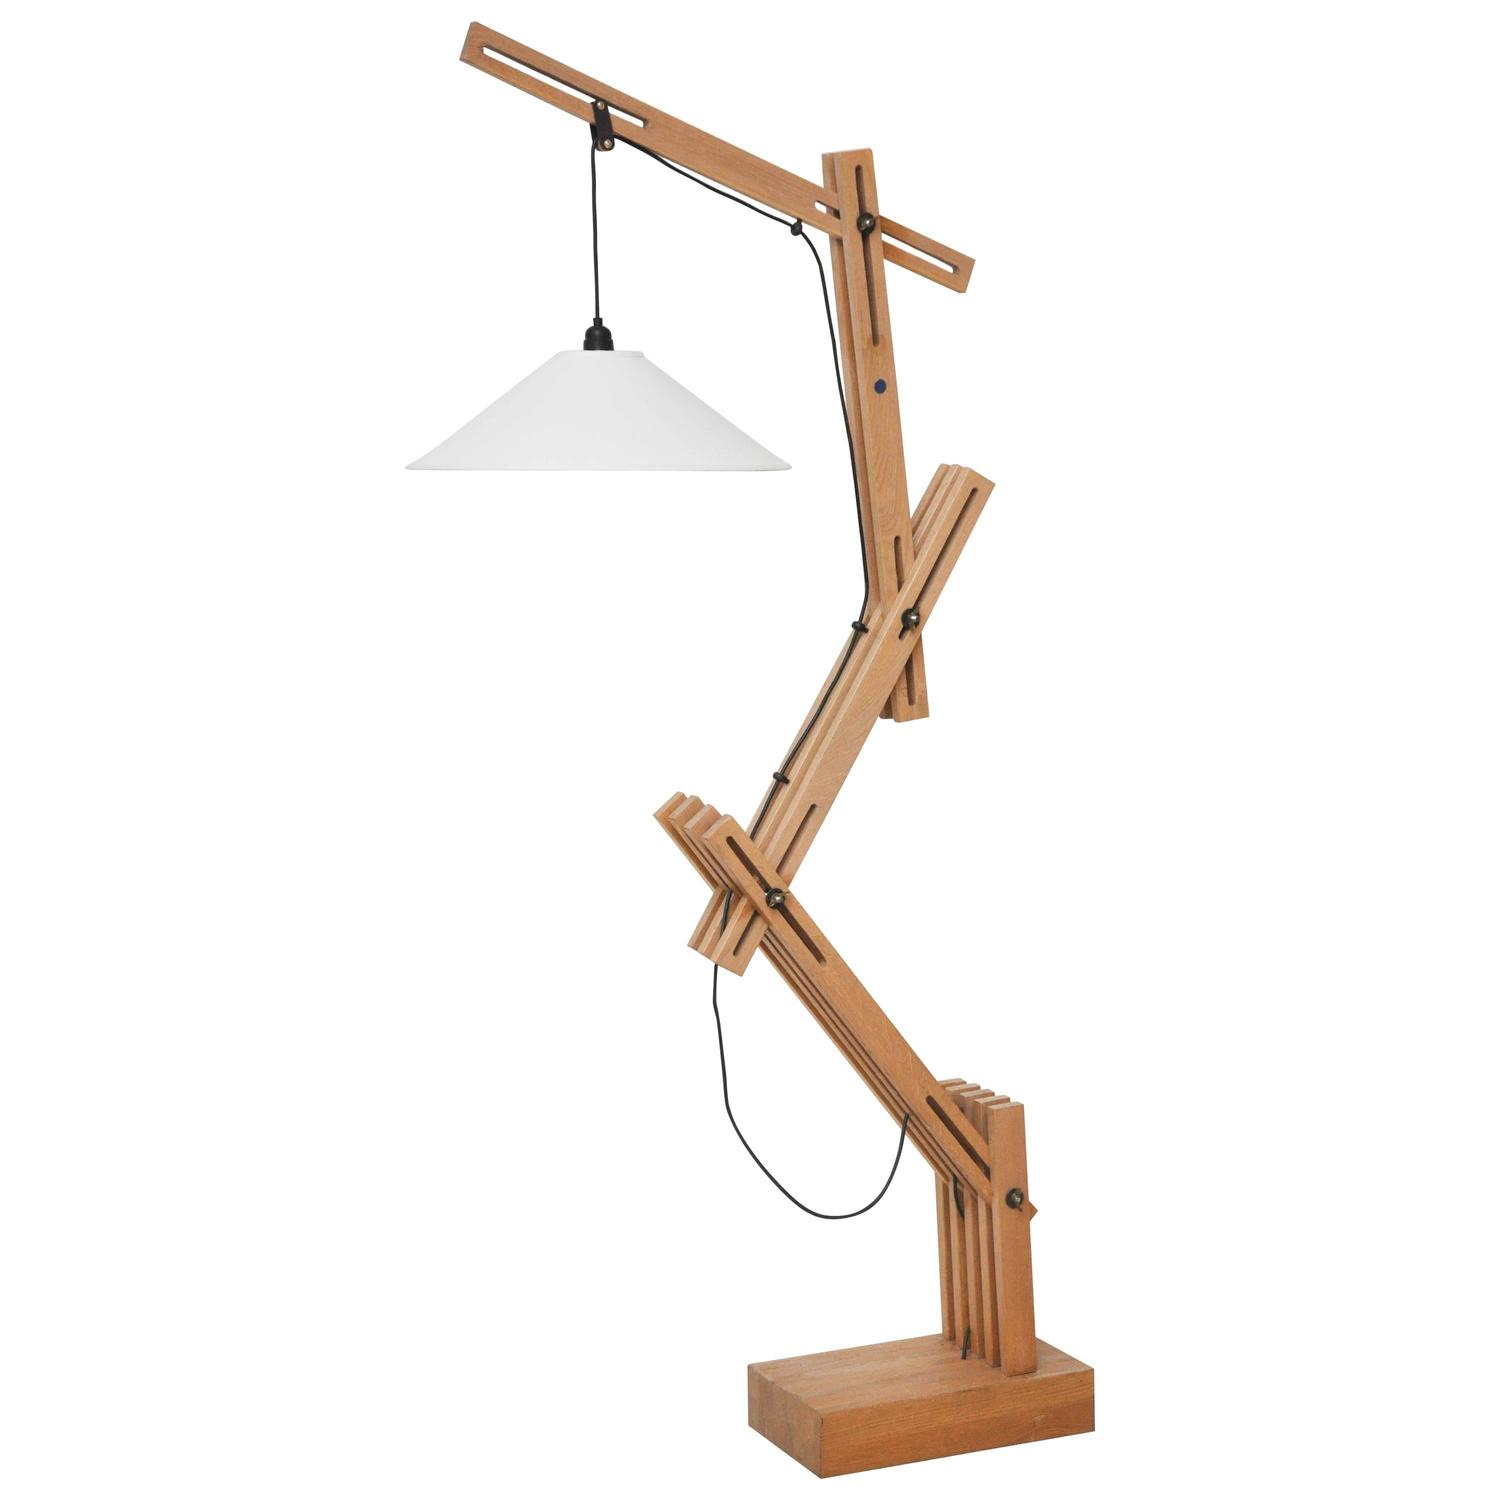 Architectural wooden floor lamp for sale at 1stdibs for Wooden floor lamp for sale